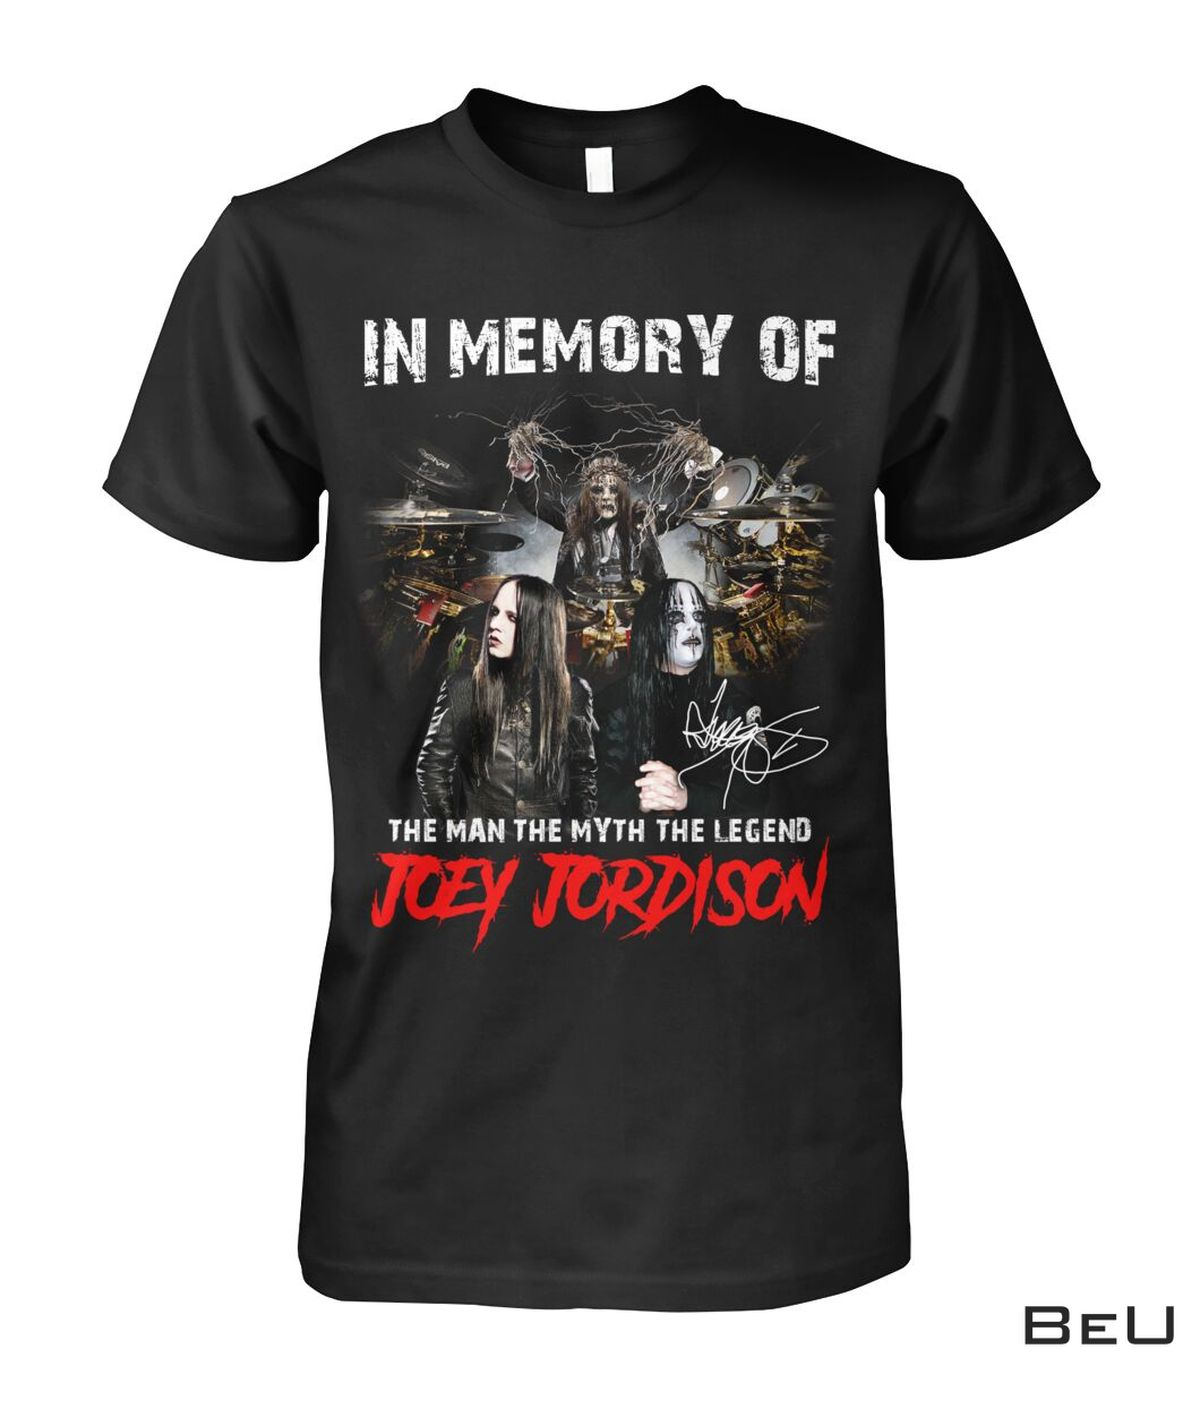 Best Shop In Memory Of The Man The Myth The Legend Joey Jordison Shirt, hoodie, tank top